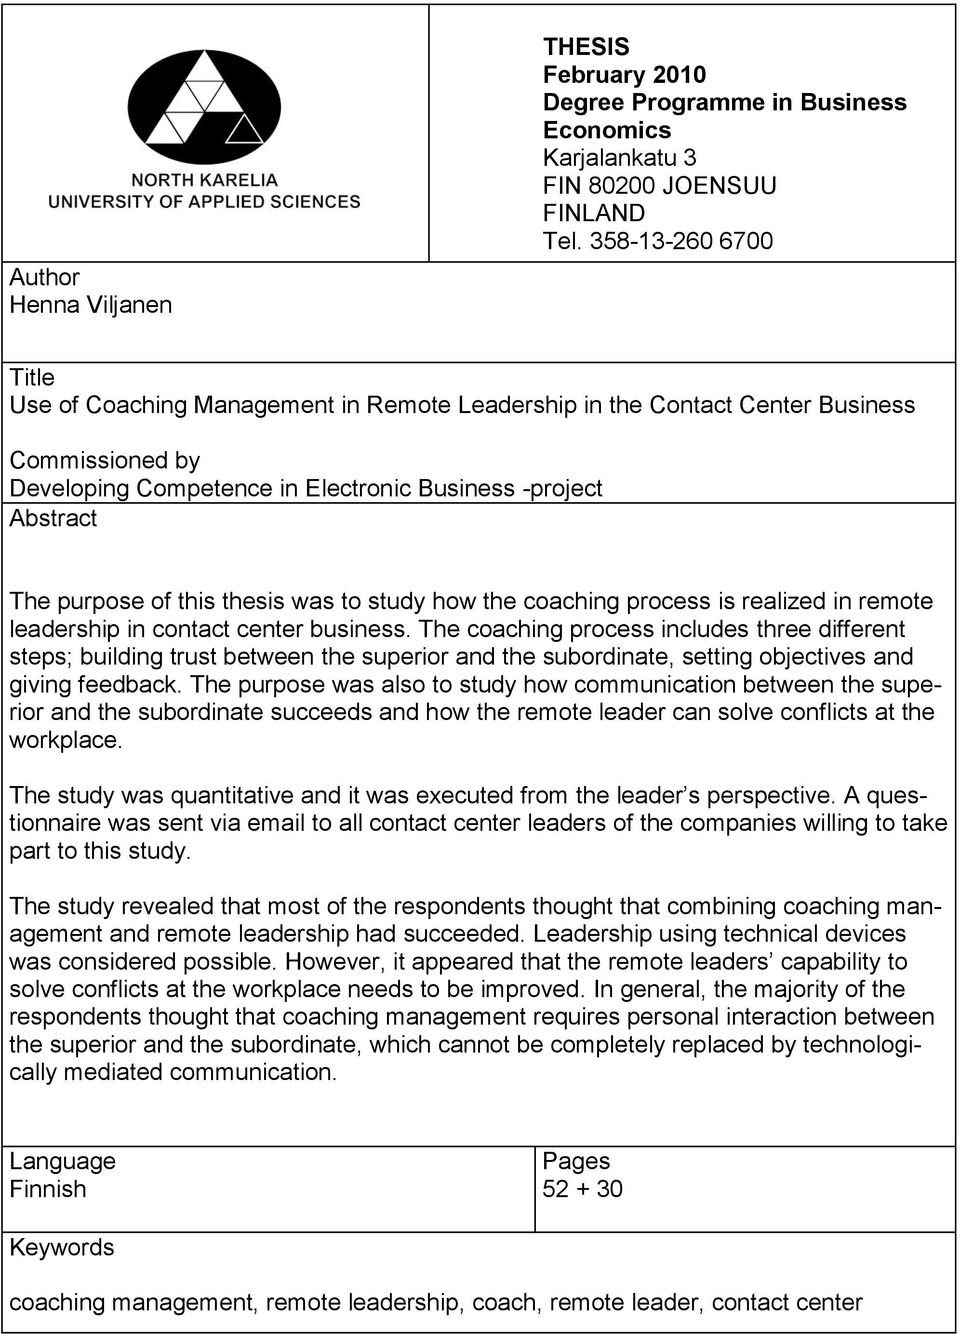 thesis was to study how the coaching process is realized in remote leadership in contact center business.